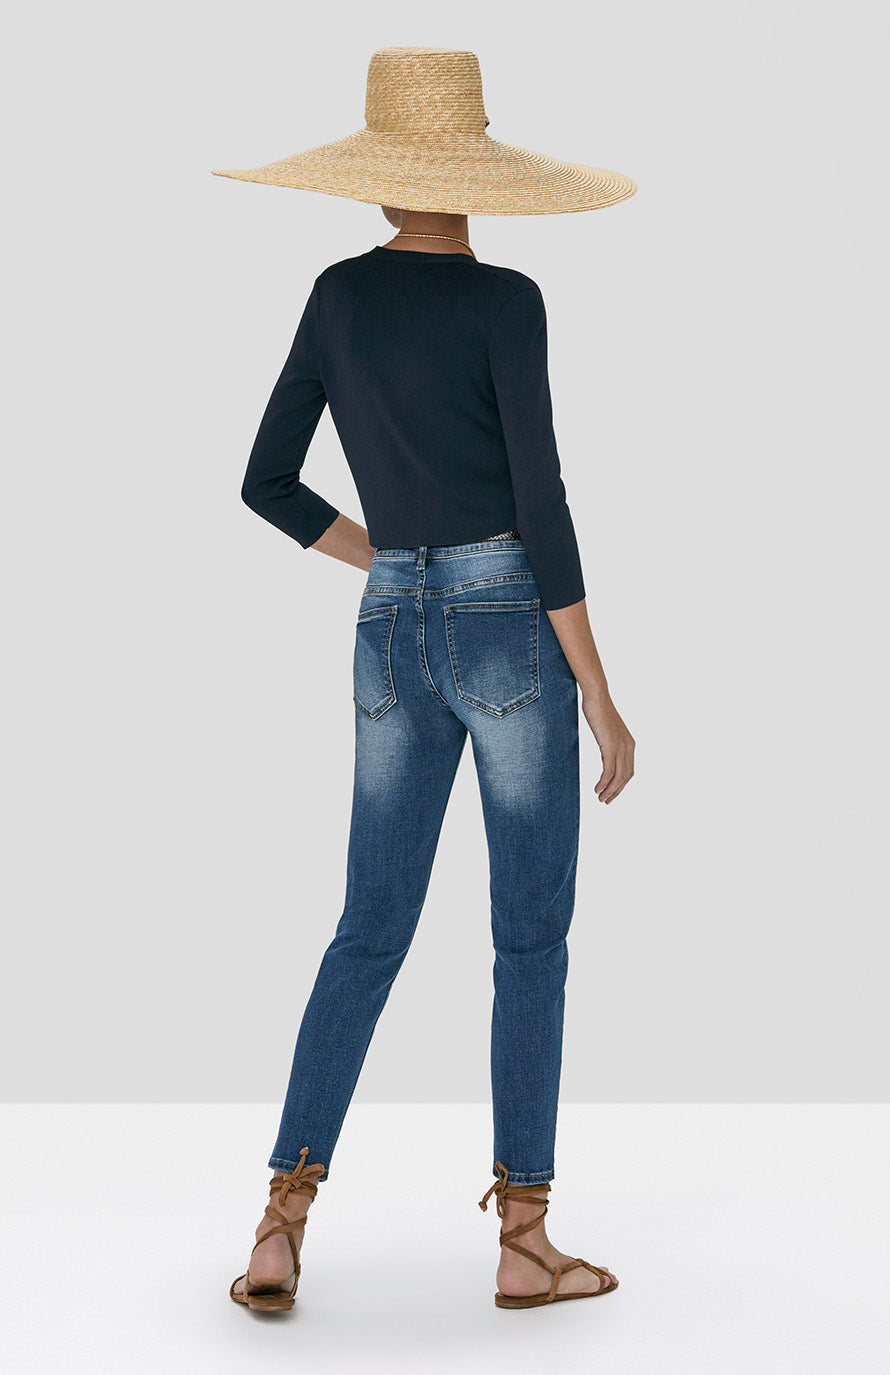 Alexis Petal Cardigan in Navy Blue and Holston Denim Pant in Indigo Denim from Spring Summer 2020 - Rear View